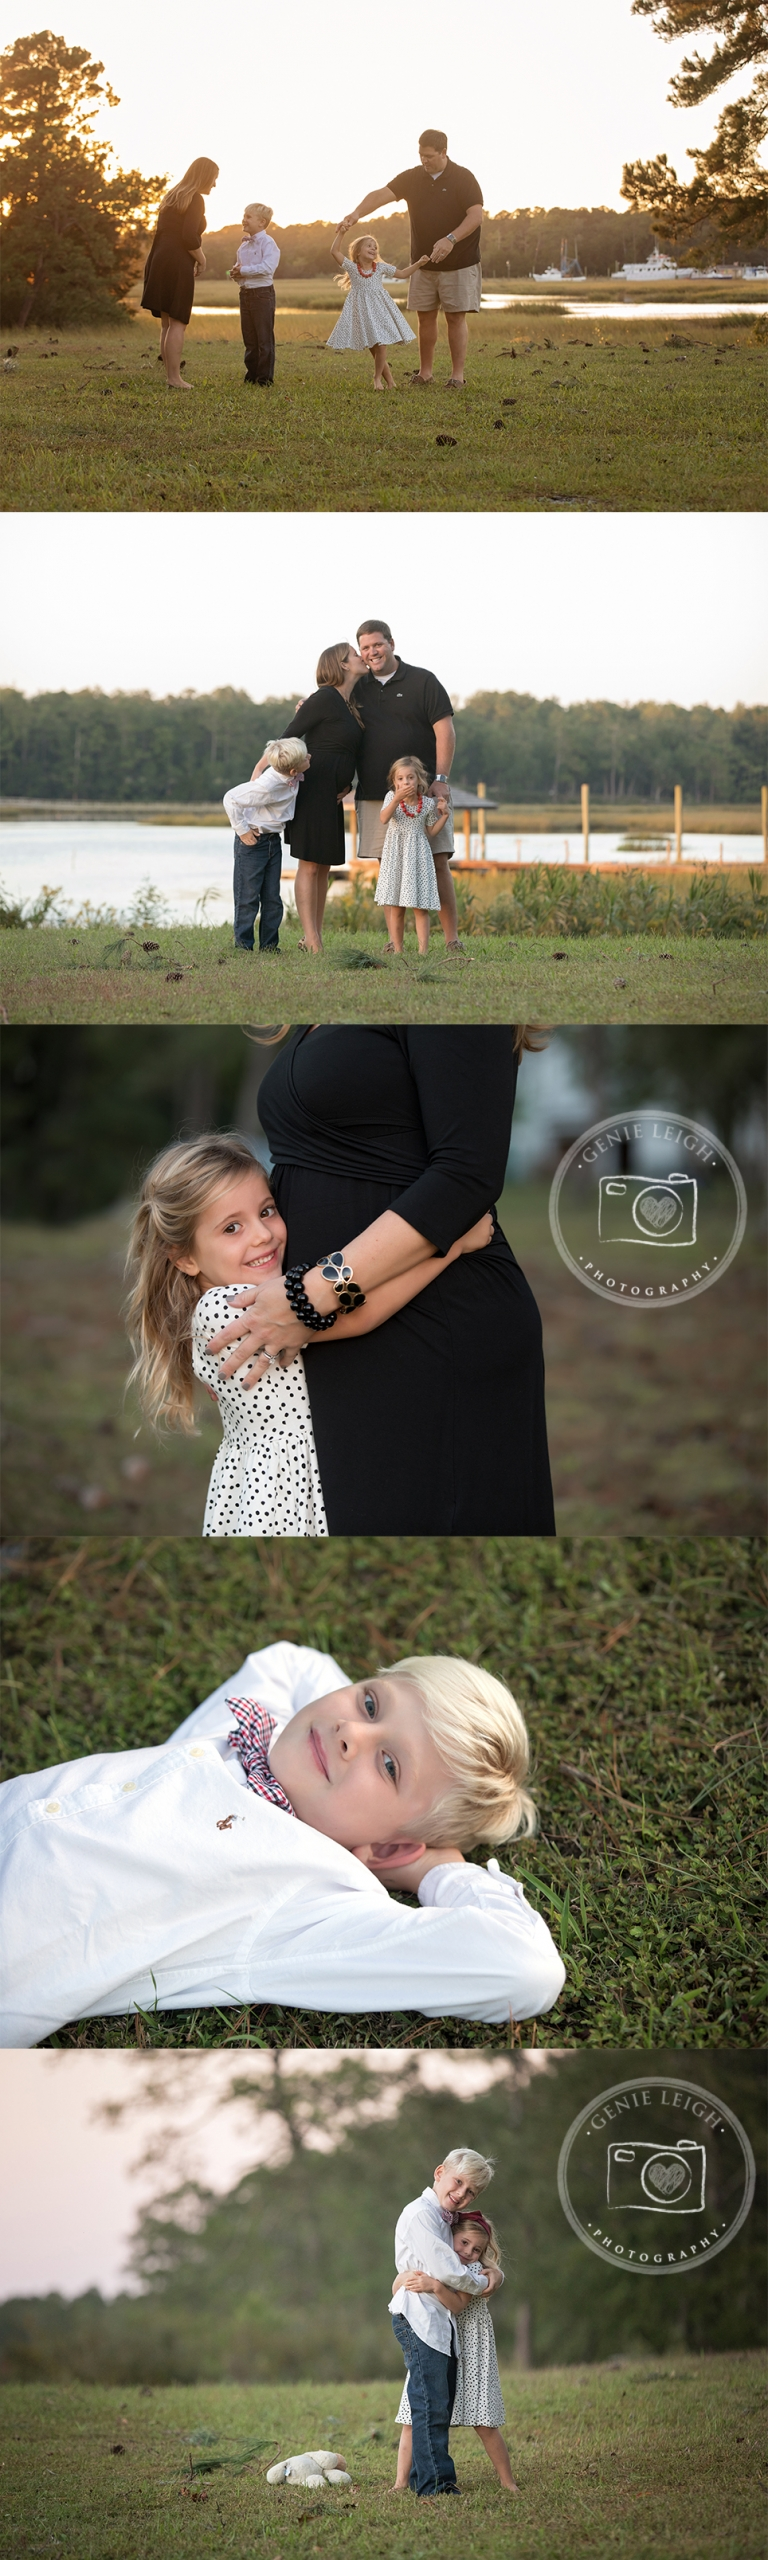 Family Portrait Session, Wilmington, NC Calabash,